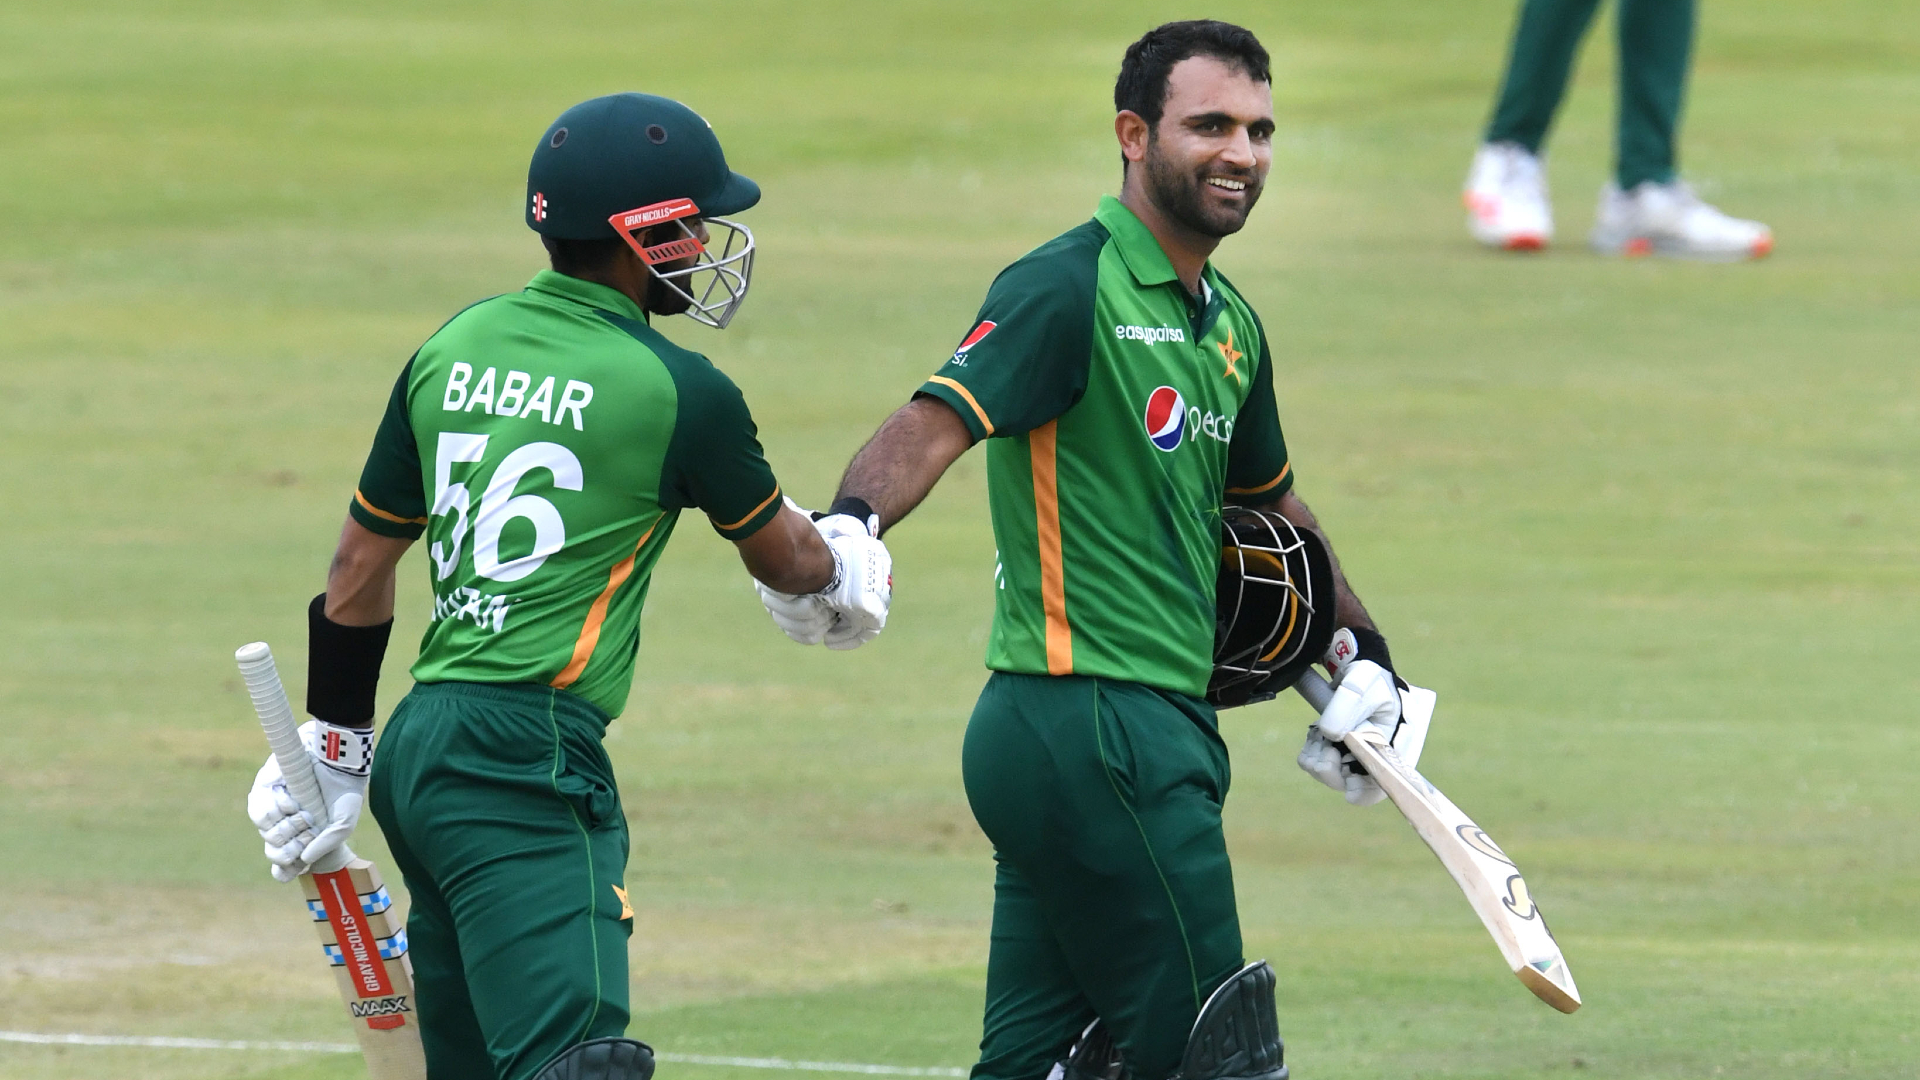 Pakistan beat a weakened South Africa side in the third ODI to ensure they emerged triumphant from the three-match series.